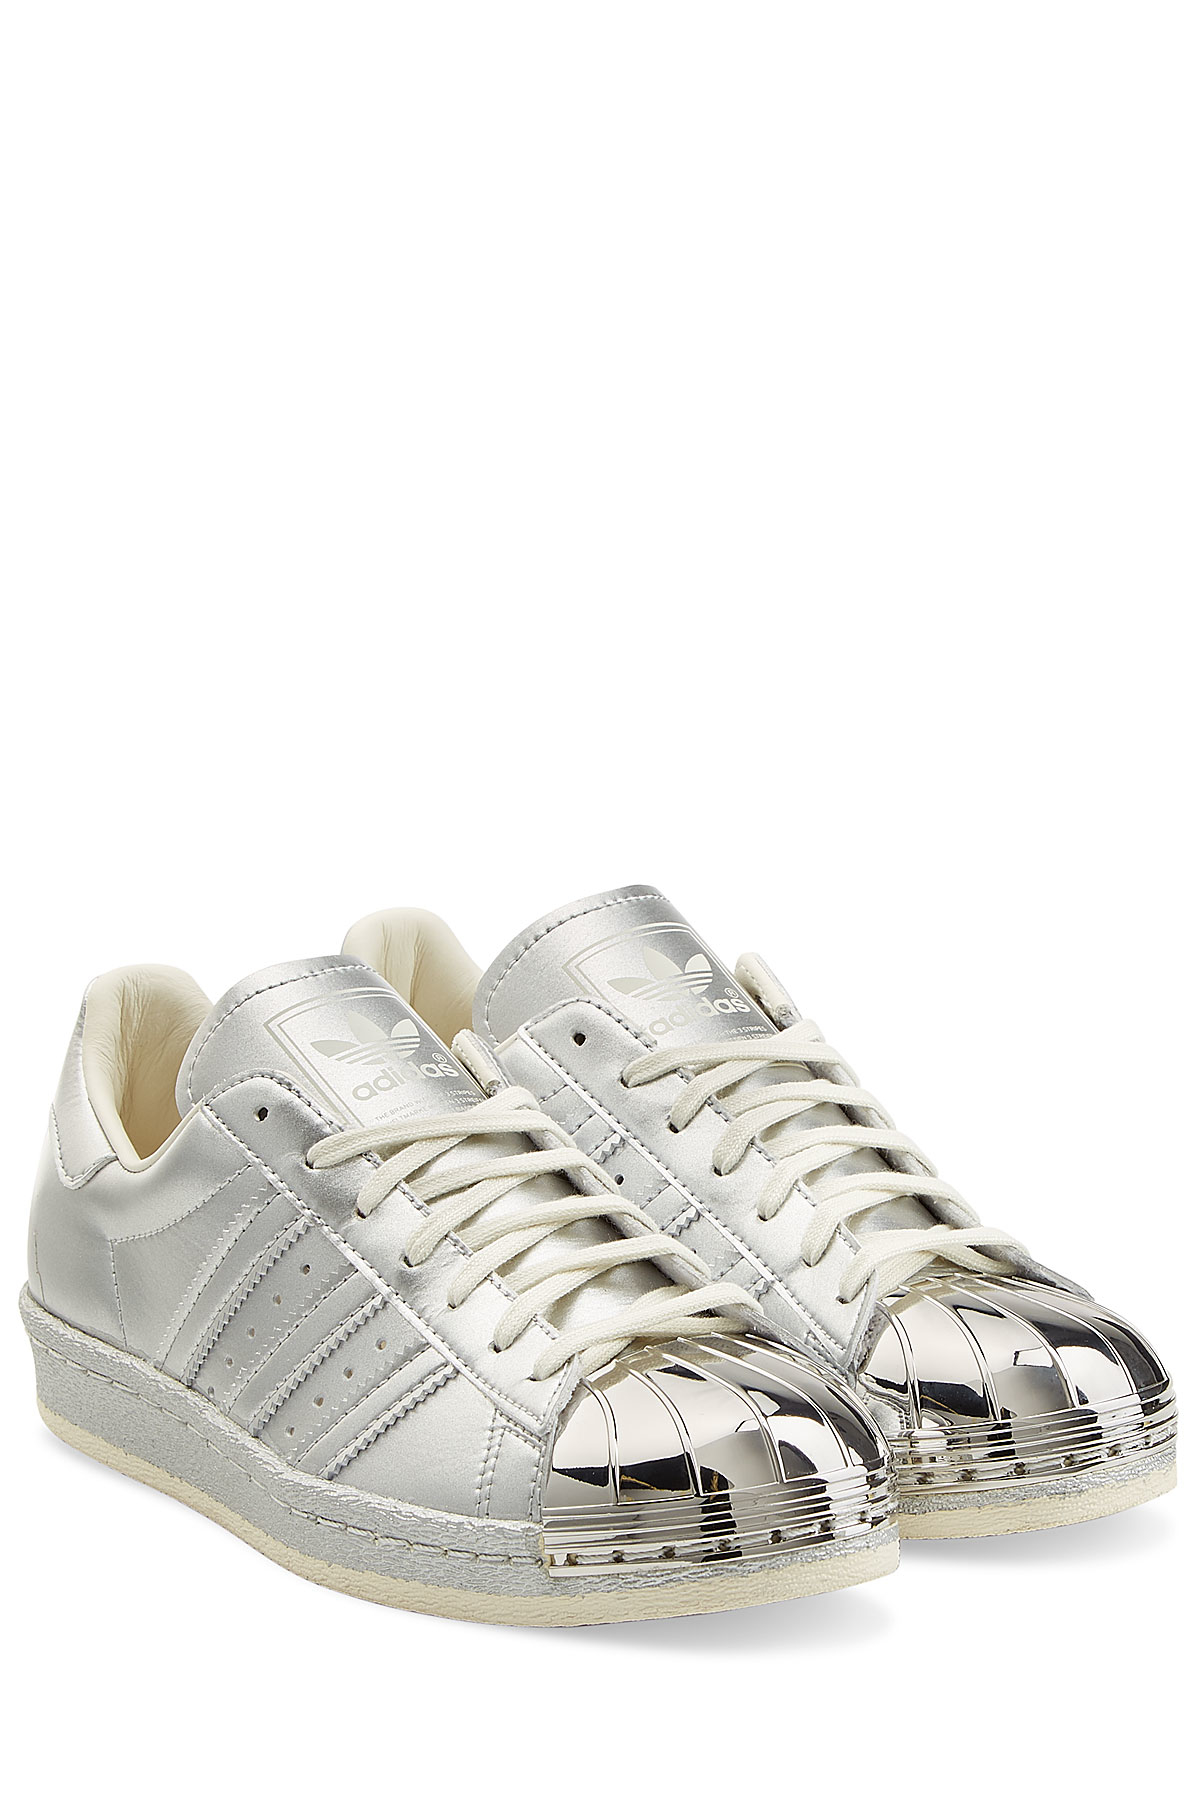 designer fashion low price cheap for discount adidas Originals Leather Superstar Sneakers With Metallic ...